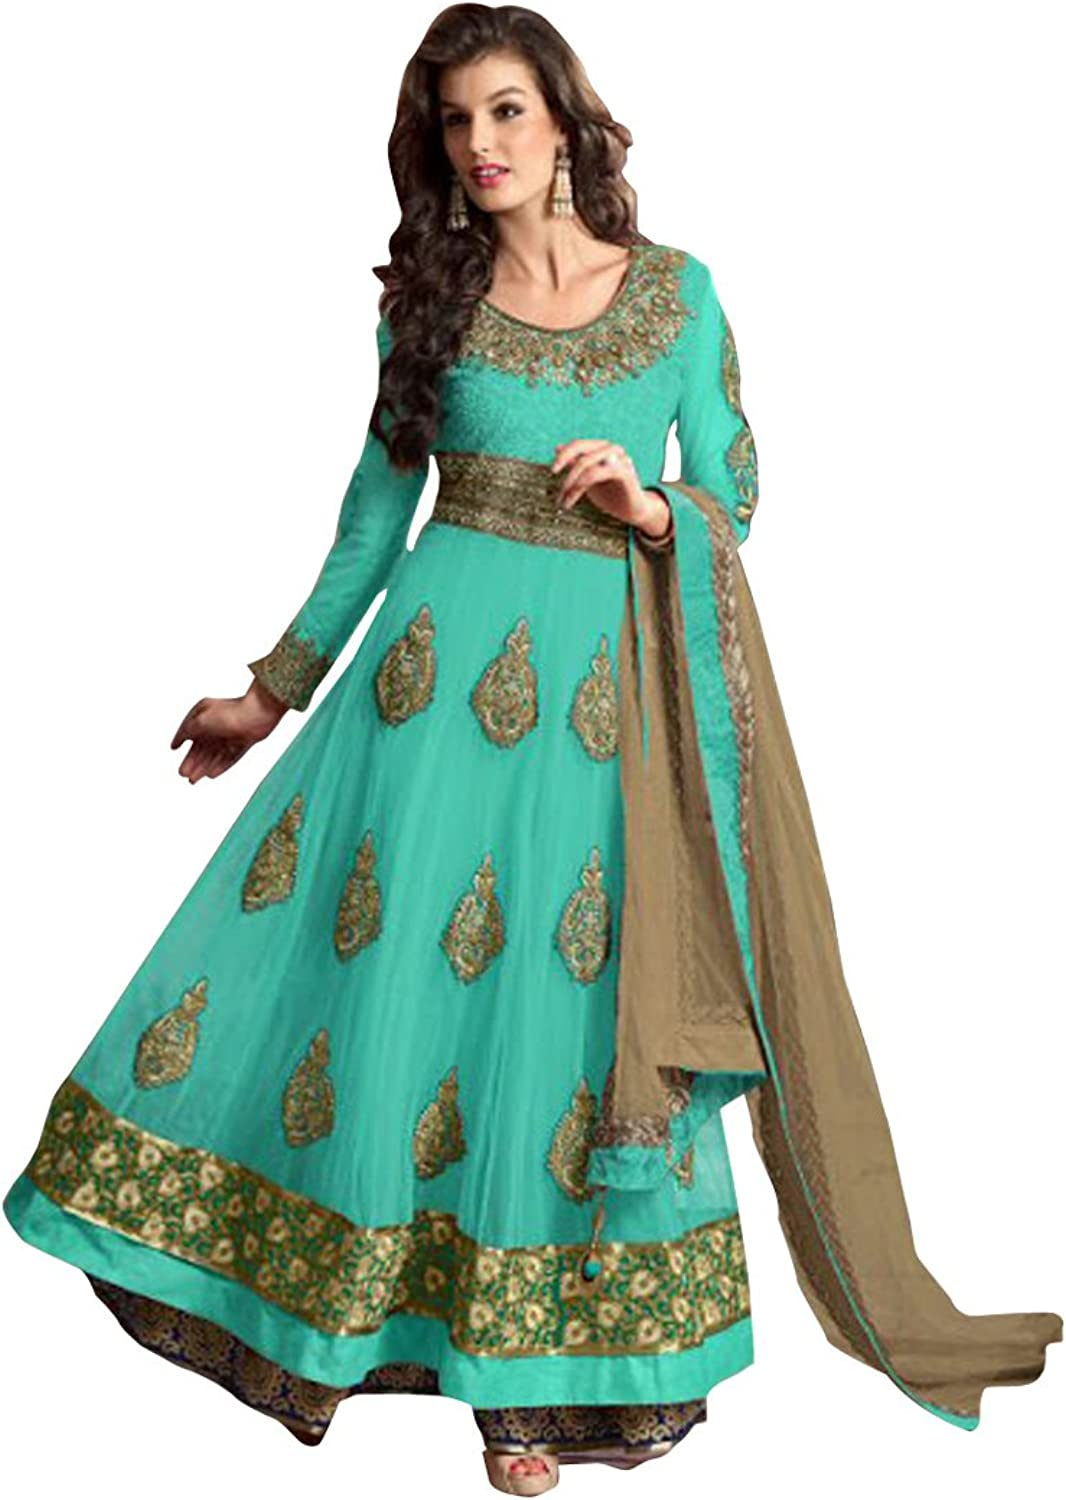 SHRI BALAJI SILK & COTTON SAREE EMPORIUM Indian Anarkali Salwar Kameez Suit Wedding Ethnic Muslim Women Dress Sexy